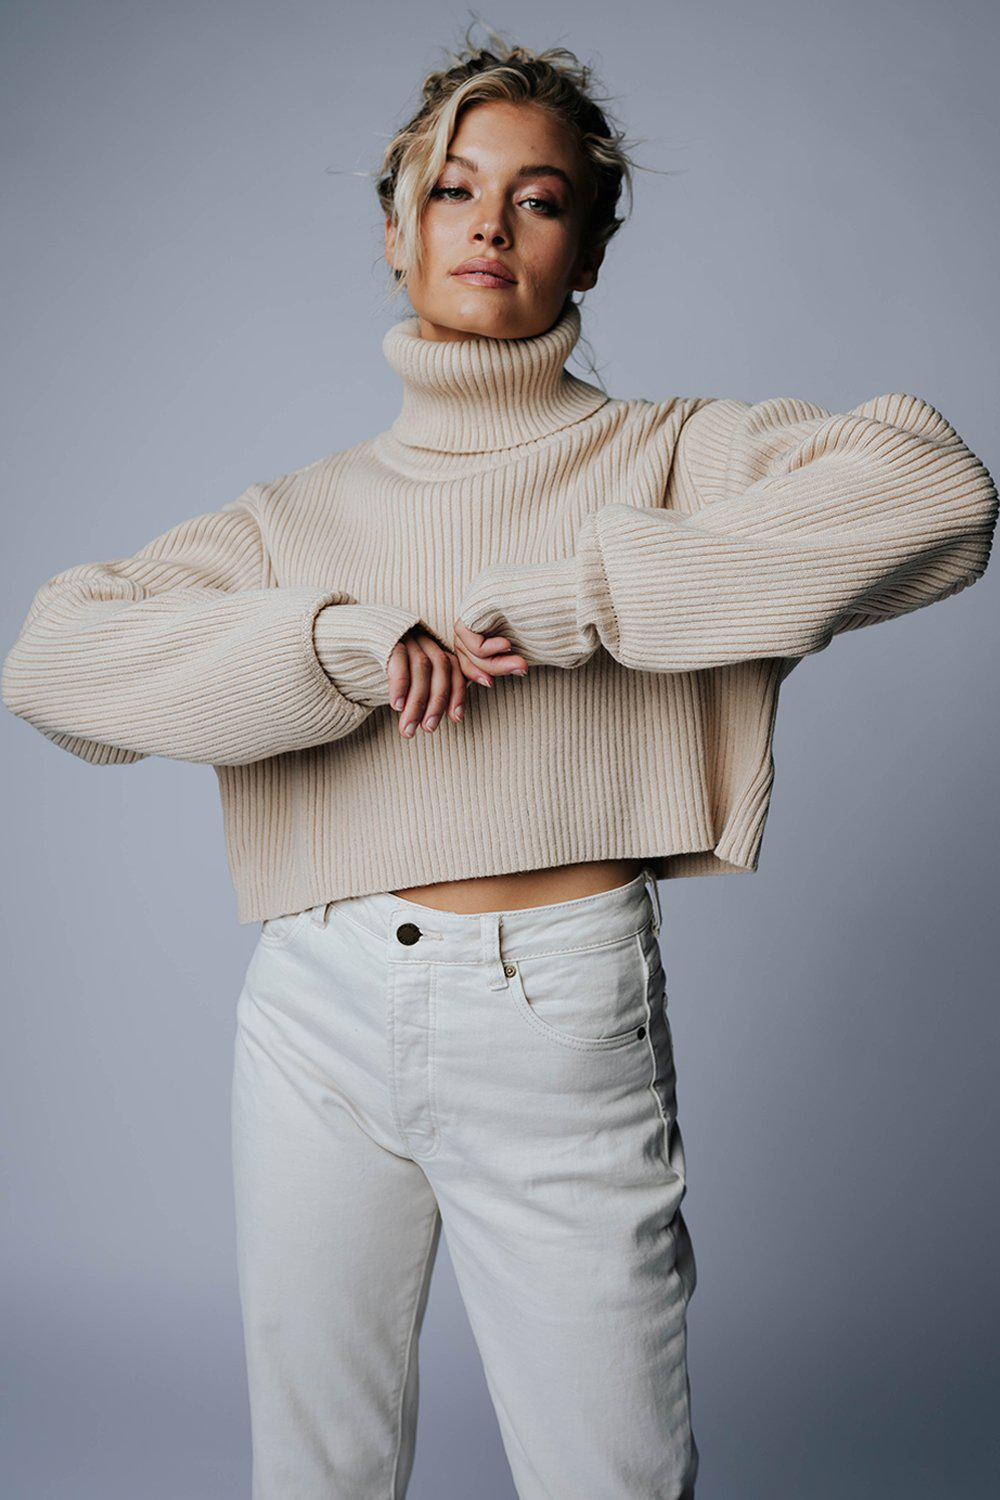 best_seller, Gettin' Older Cropped Pullover in Beige, Top, women's clothing, dresses, skirts, coats, jackets, shoes, boots, tops, tee shirts, jeans, free people, levi's, rollas, jumpsuits, bottoms, tops, sweaters, pullovers, pants, shorts, sweats,.